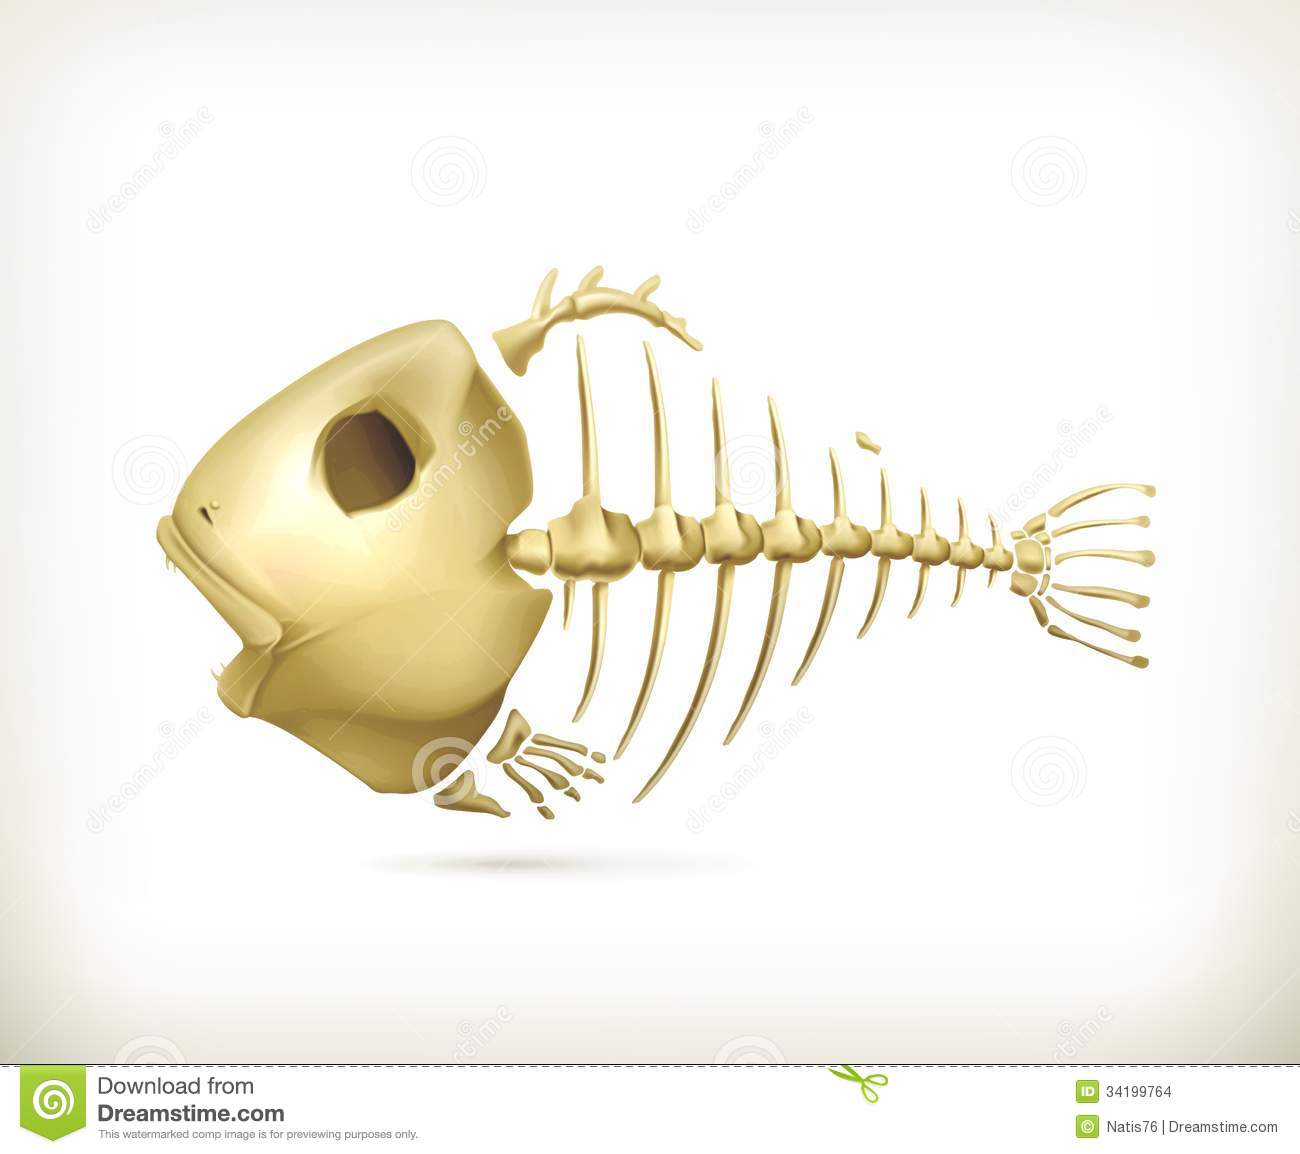 Fish skeleton, illustration on white background.